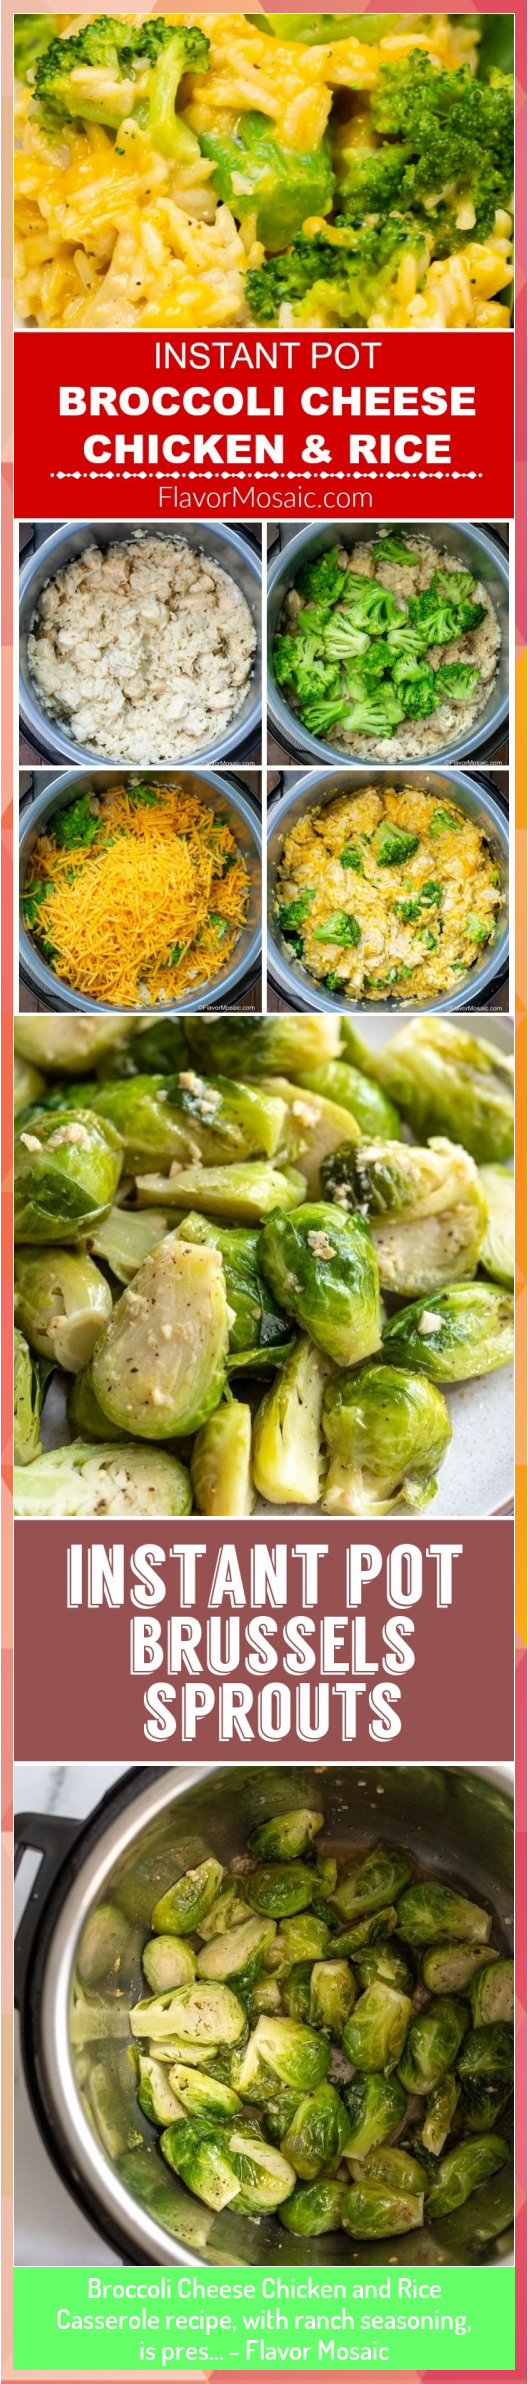 Broccoli Cheese Chicken and Rice Casserole recipe with ranch seasoning is pres  Flavor Mosaic